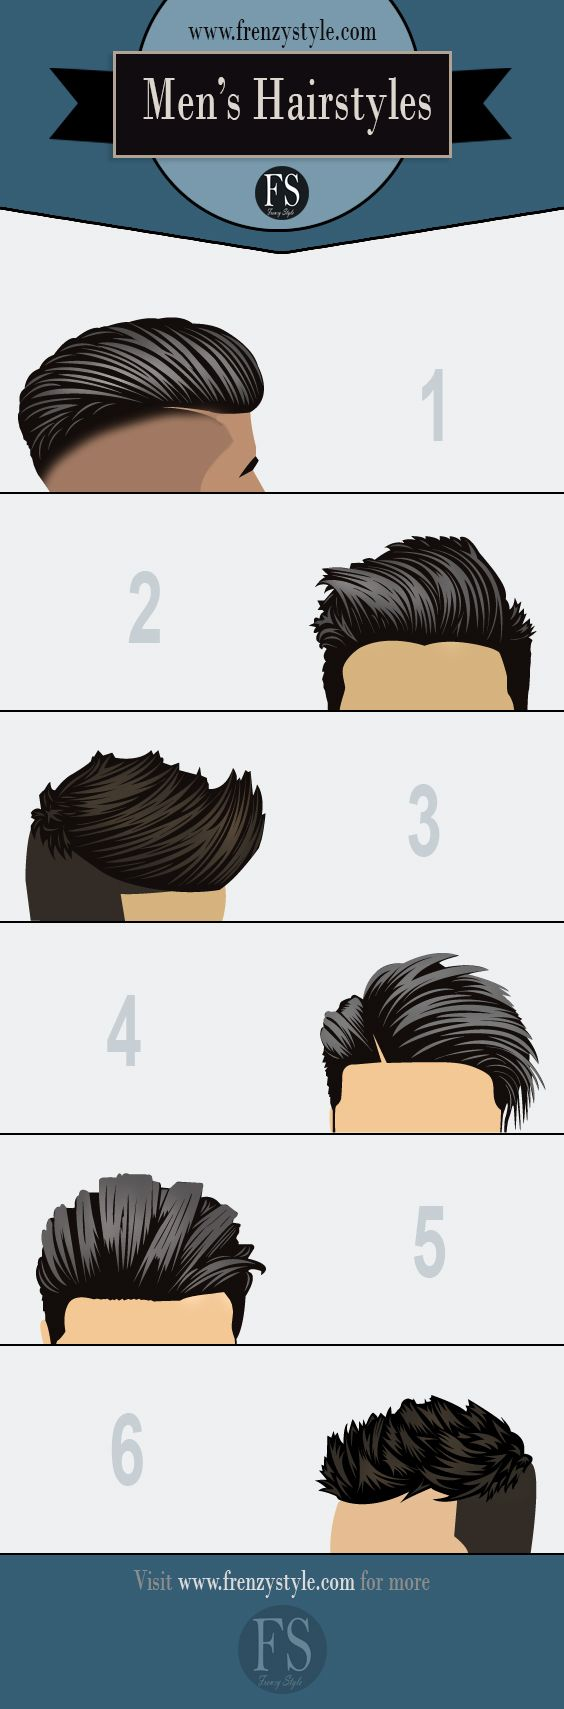 6 year boy hairstyle  popular menus hairstyles and haircuts and the products used to